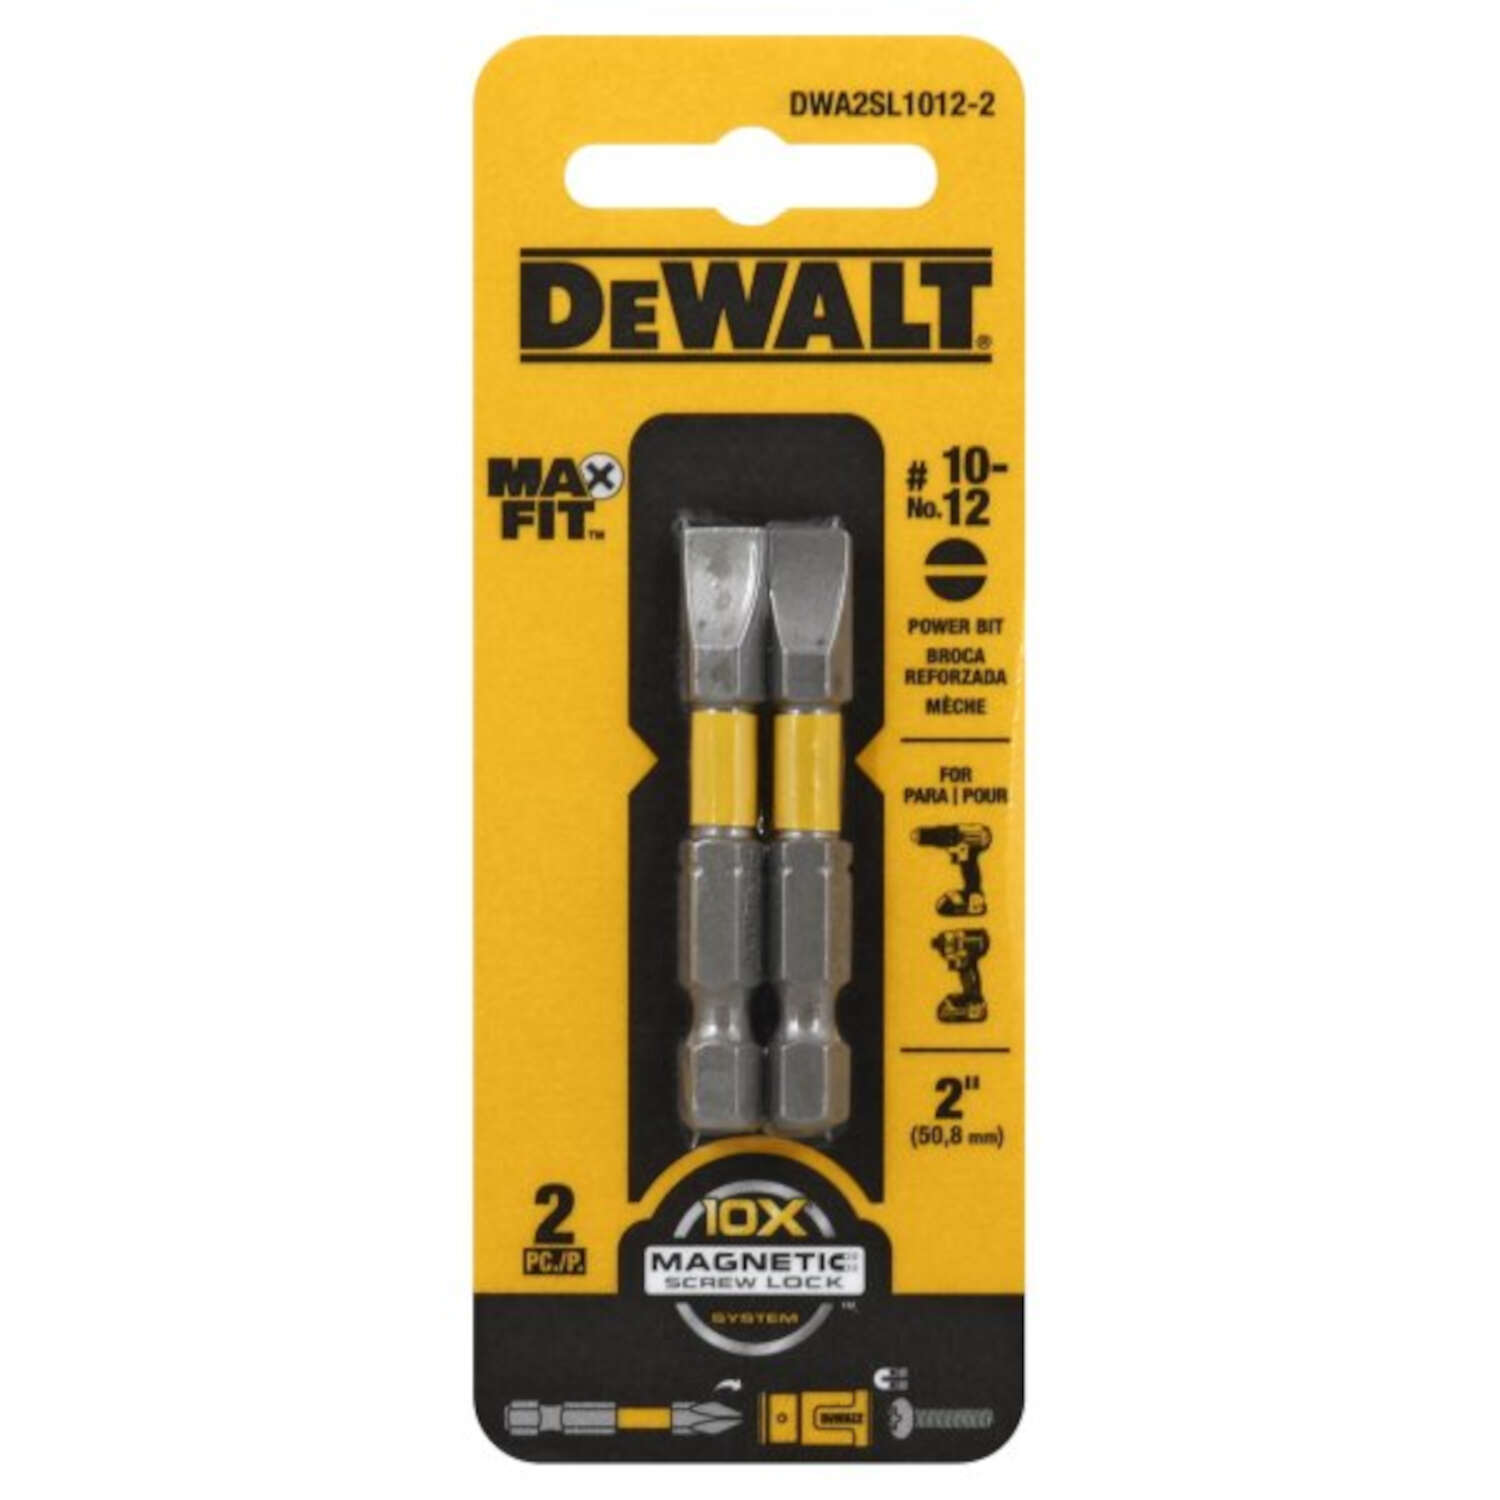 DeWalt MAXFIT Slotted 10-12 x 2 in. L Power Bit S2 Tool Steel 2 pc.